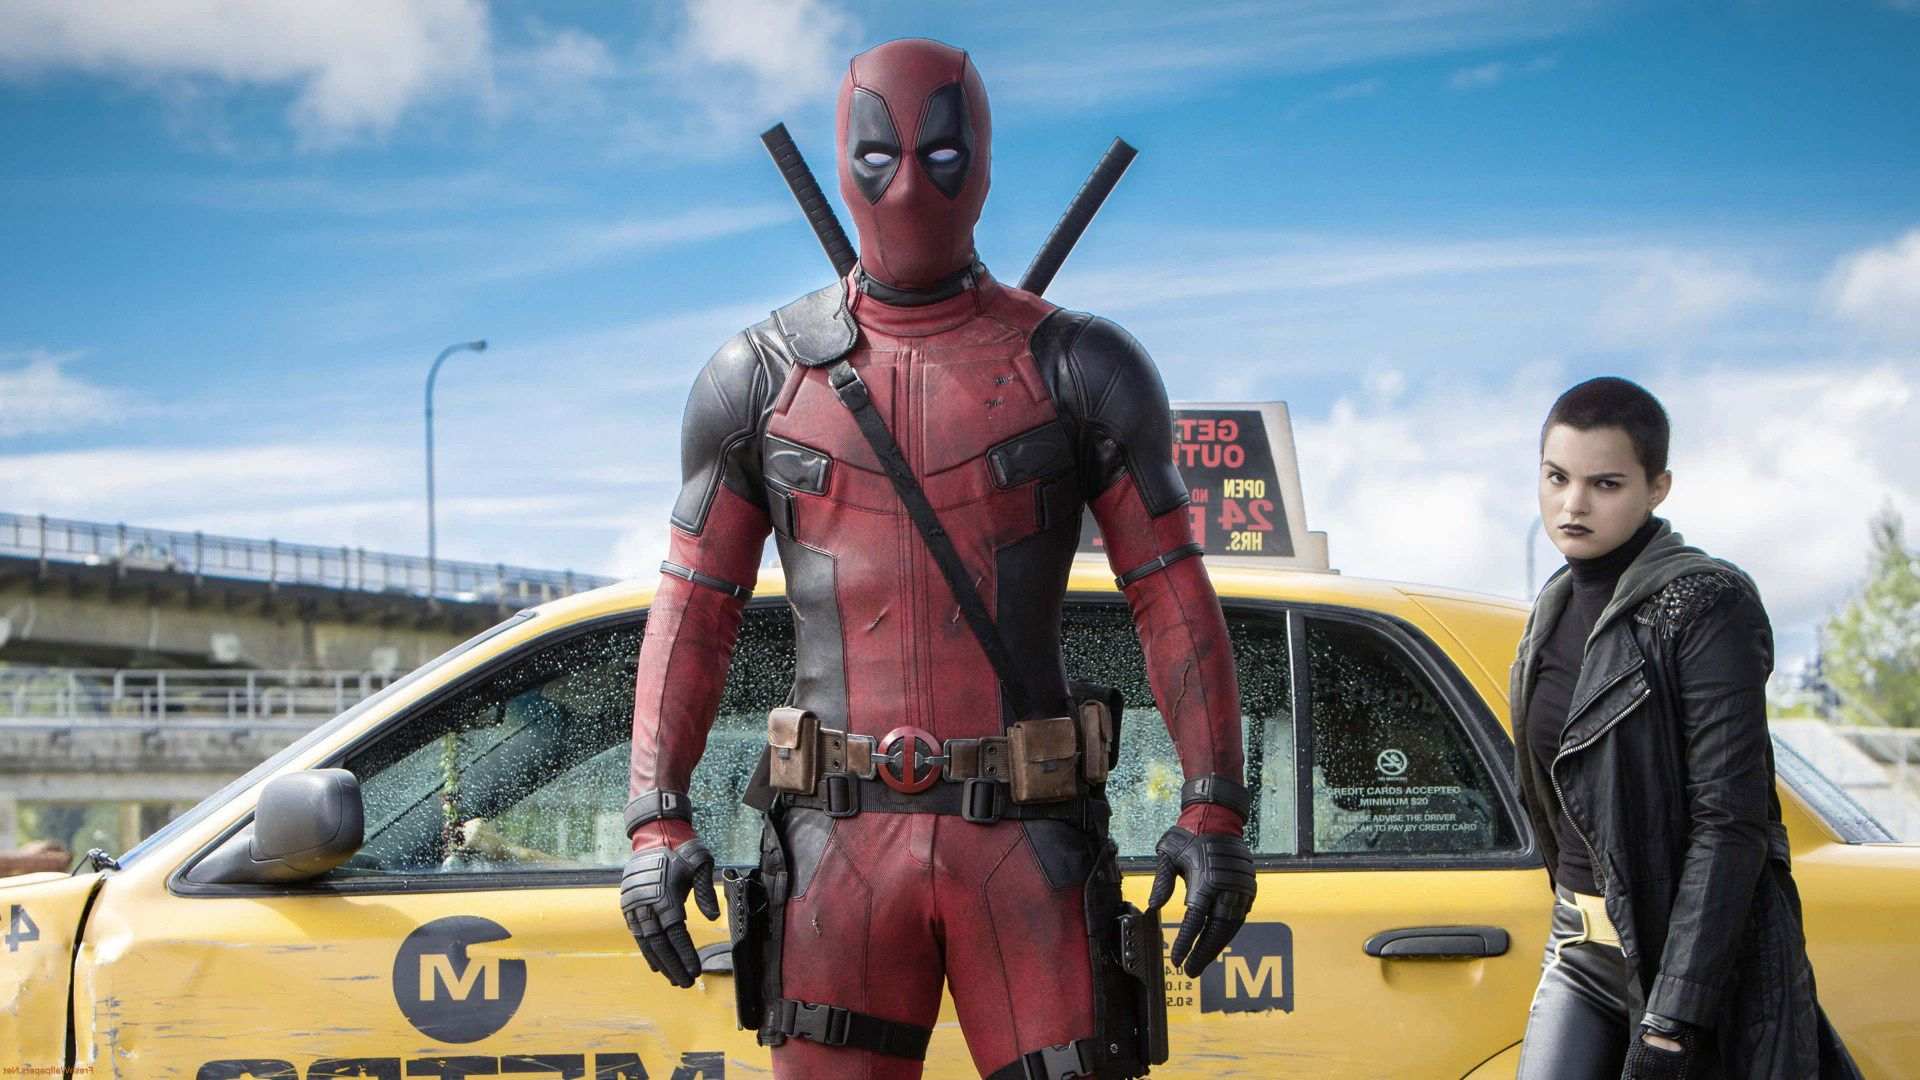 Deadpool Movie Wallpaper Hd Wallpapers Available In Different